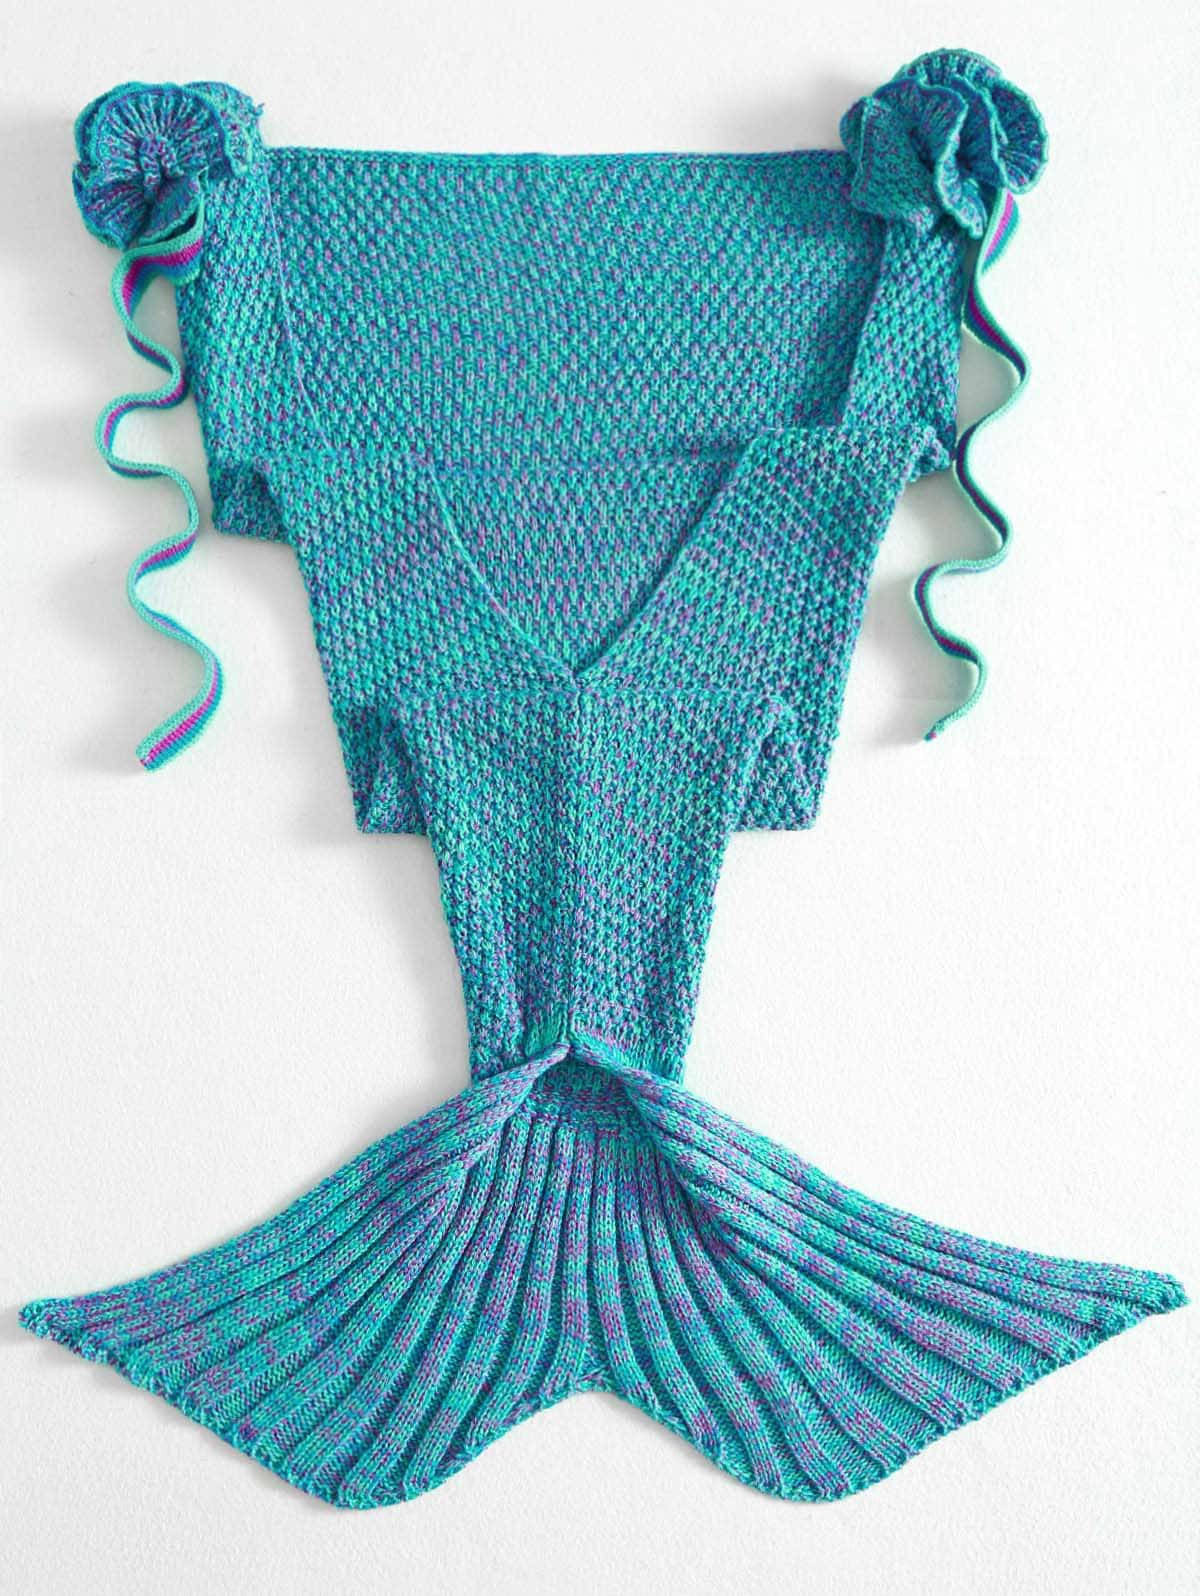 Unique Fashion Knitted Flowers Embellished Mermaid Tail Shape Knitted Mermaid Blanket Of Great 41 Images Knitted Mermaid Blanket